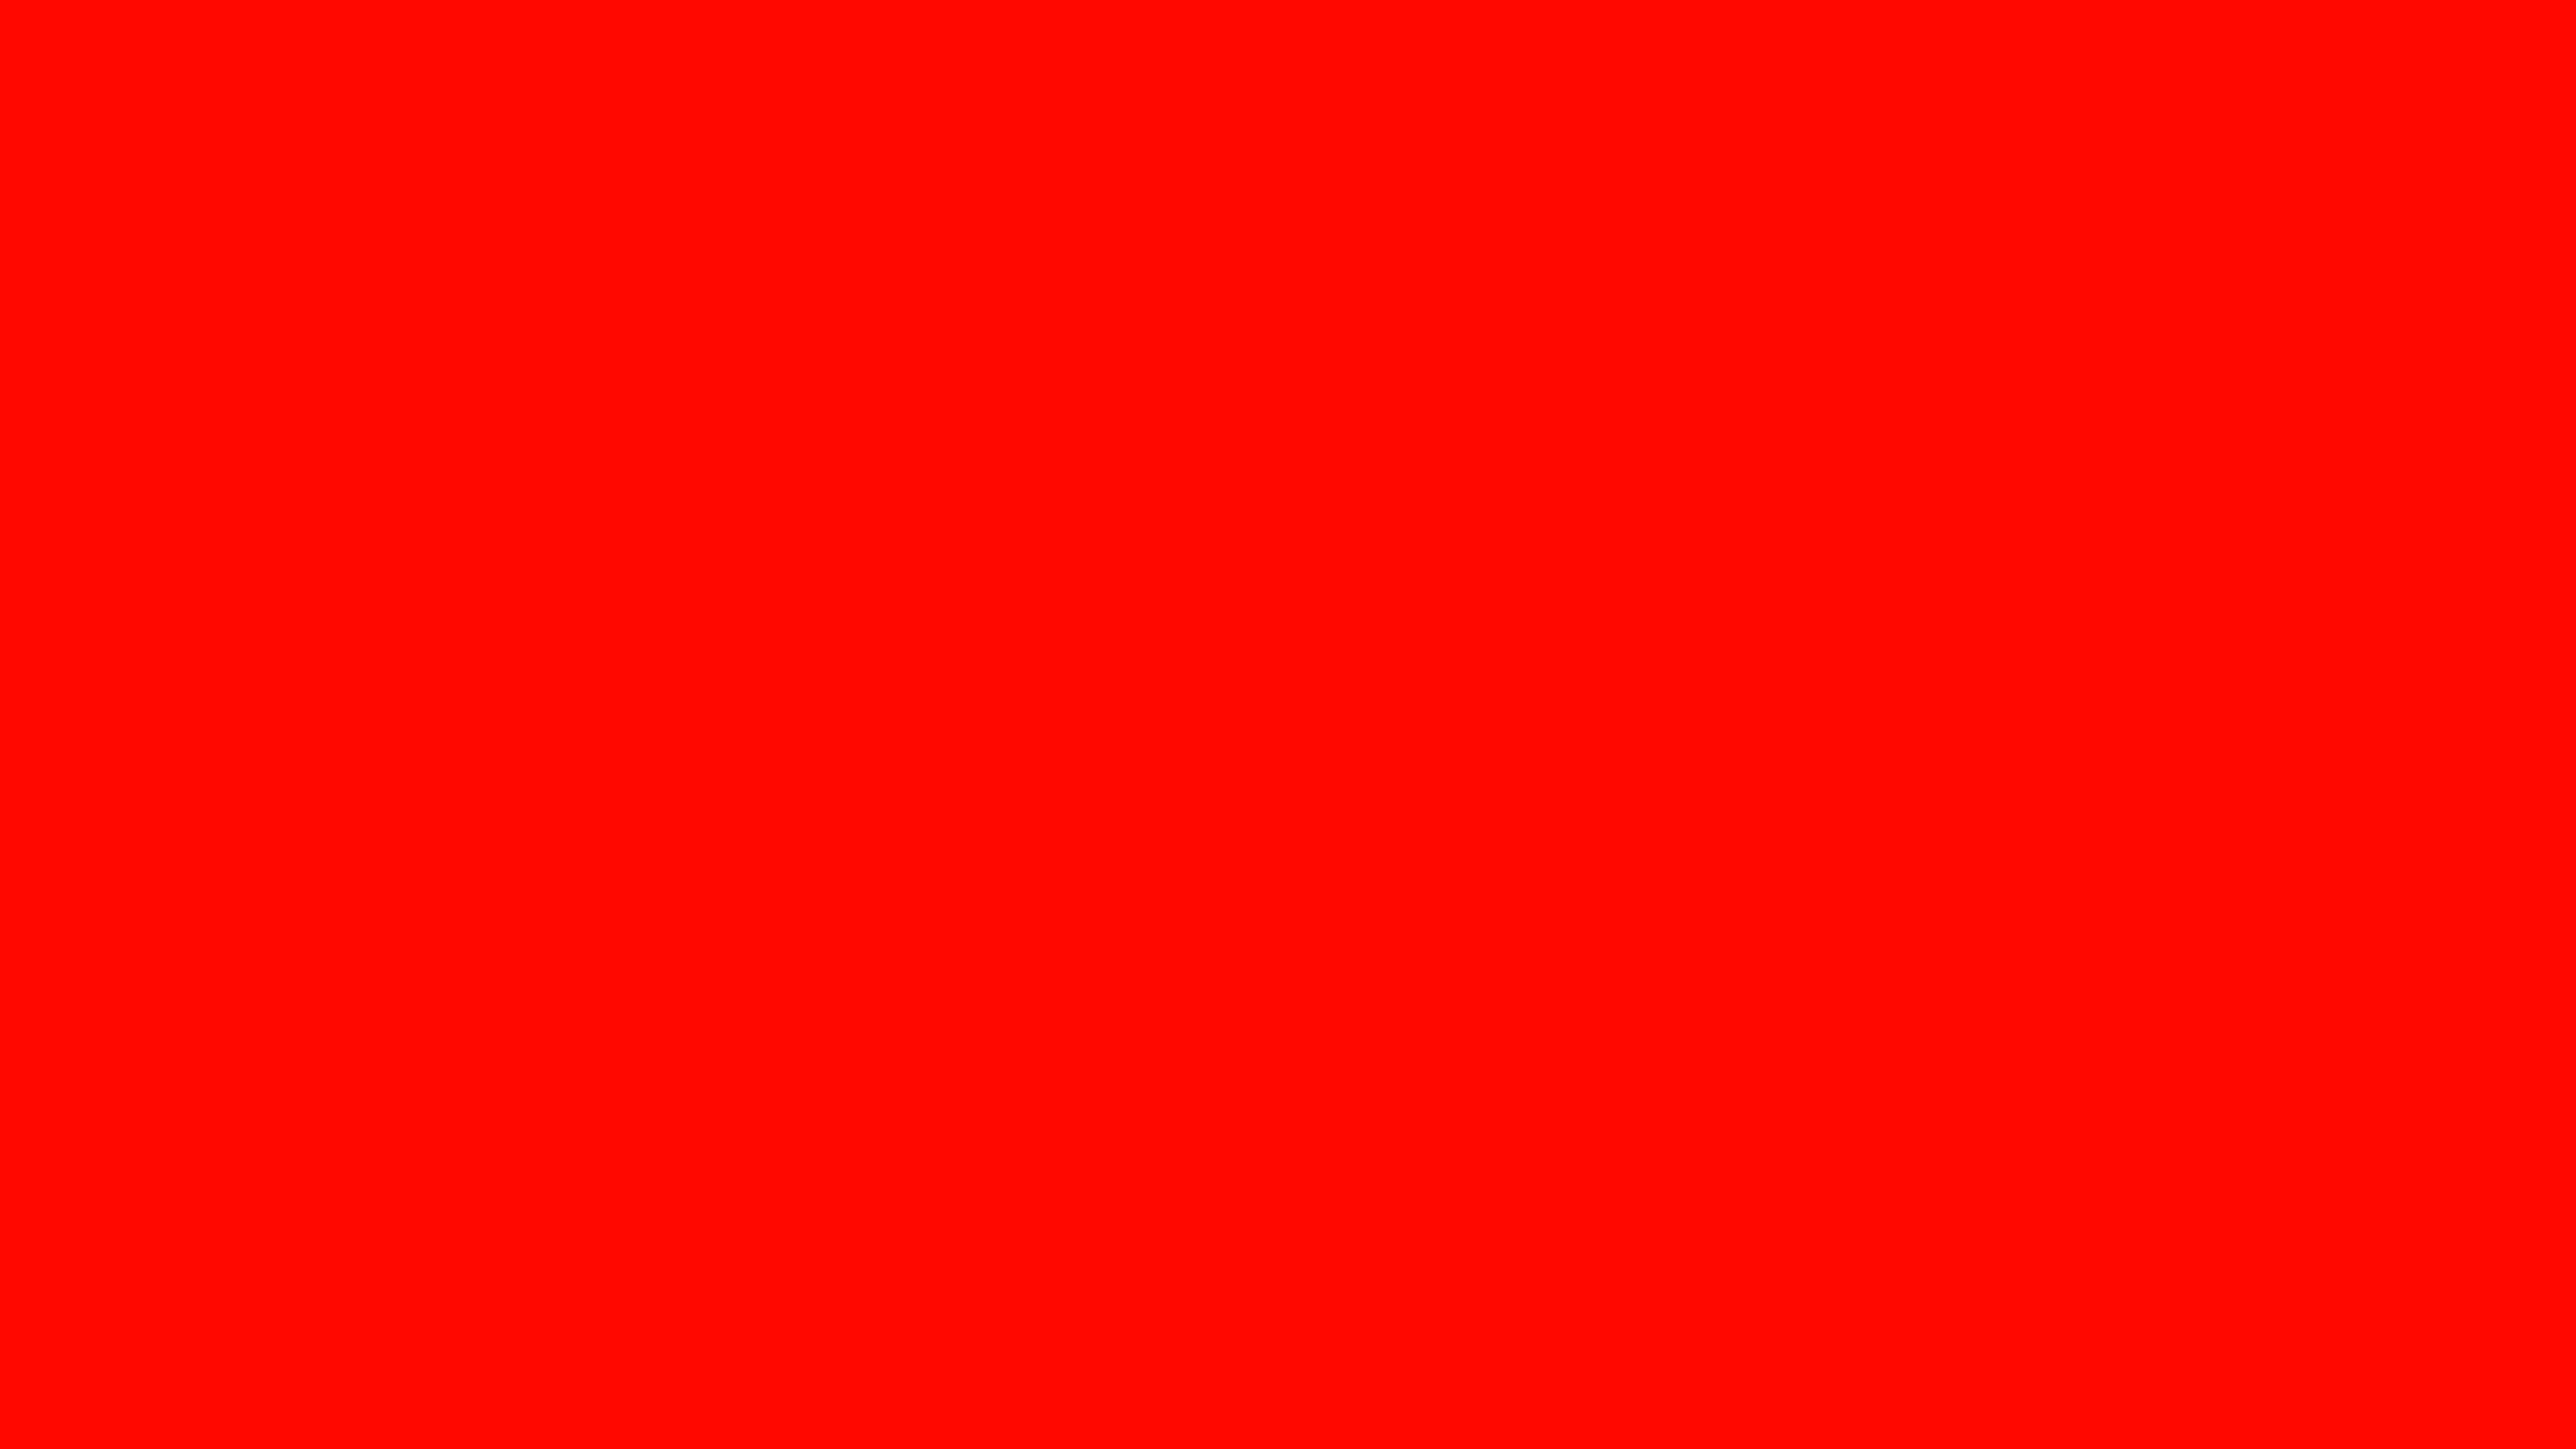 7680x4320 Candy Apple Red Solid Color Background